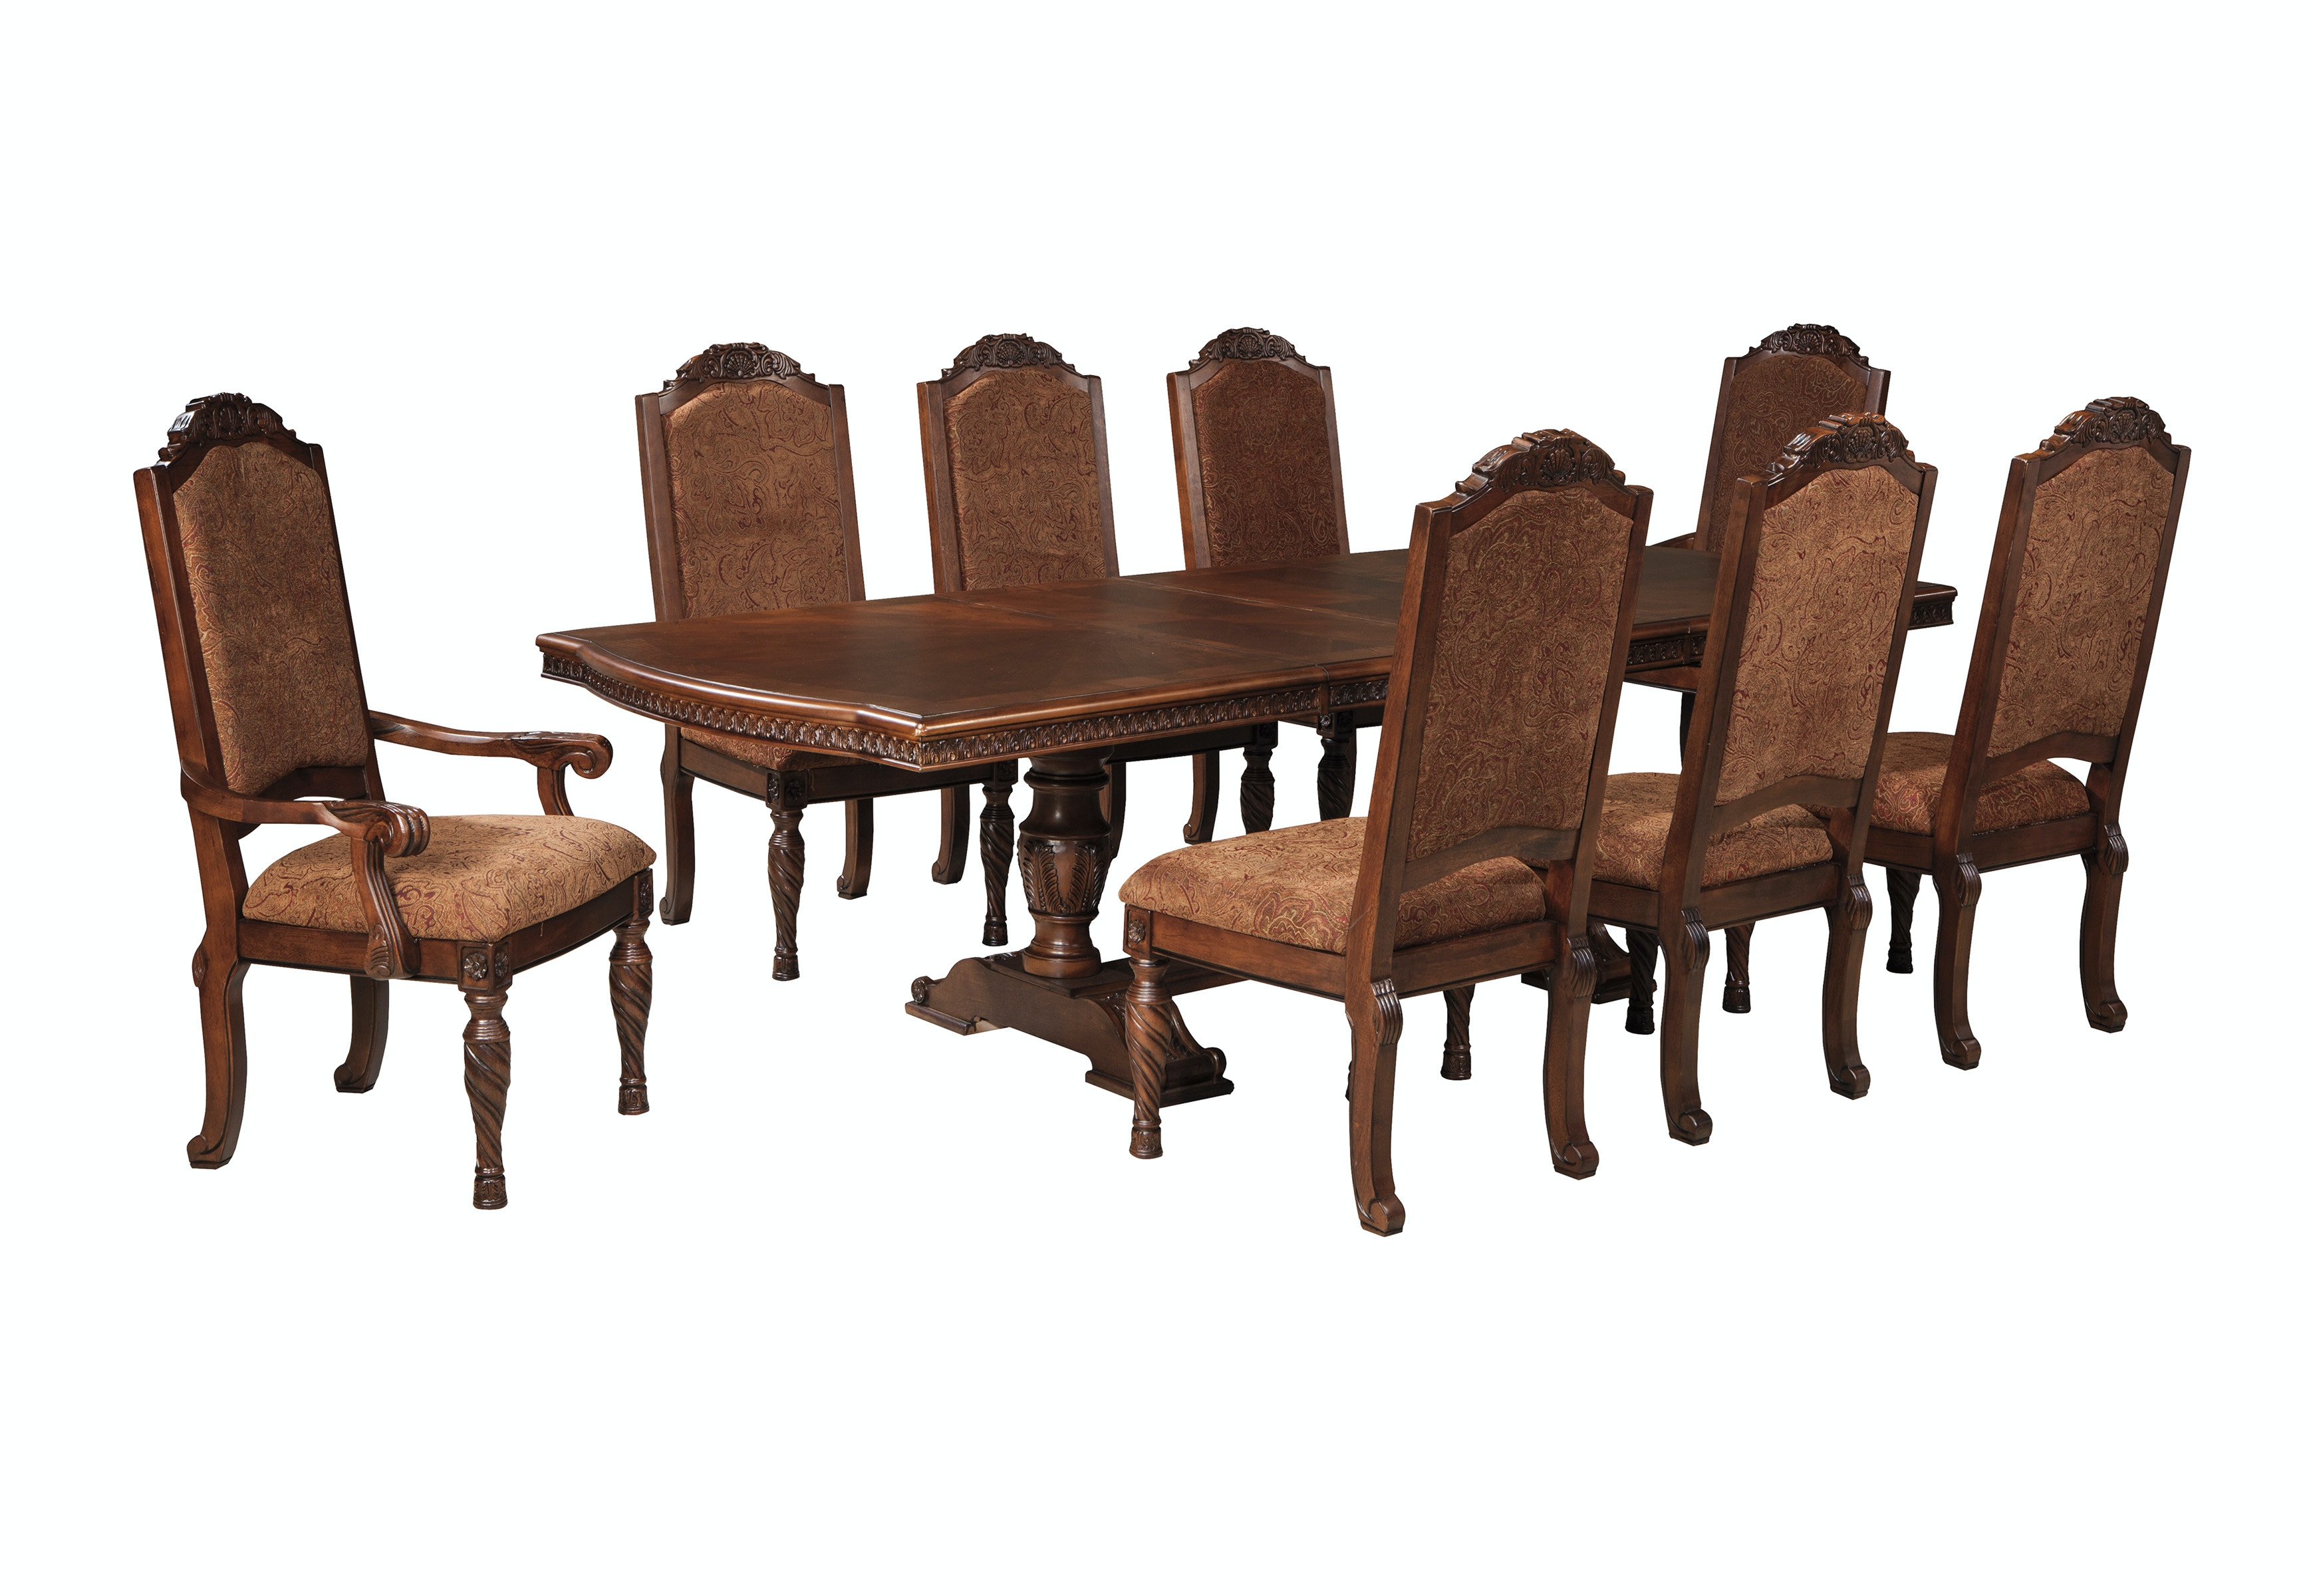 Ashley North Shore Dining Room Set 7pc D553 55/02x6